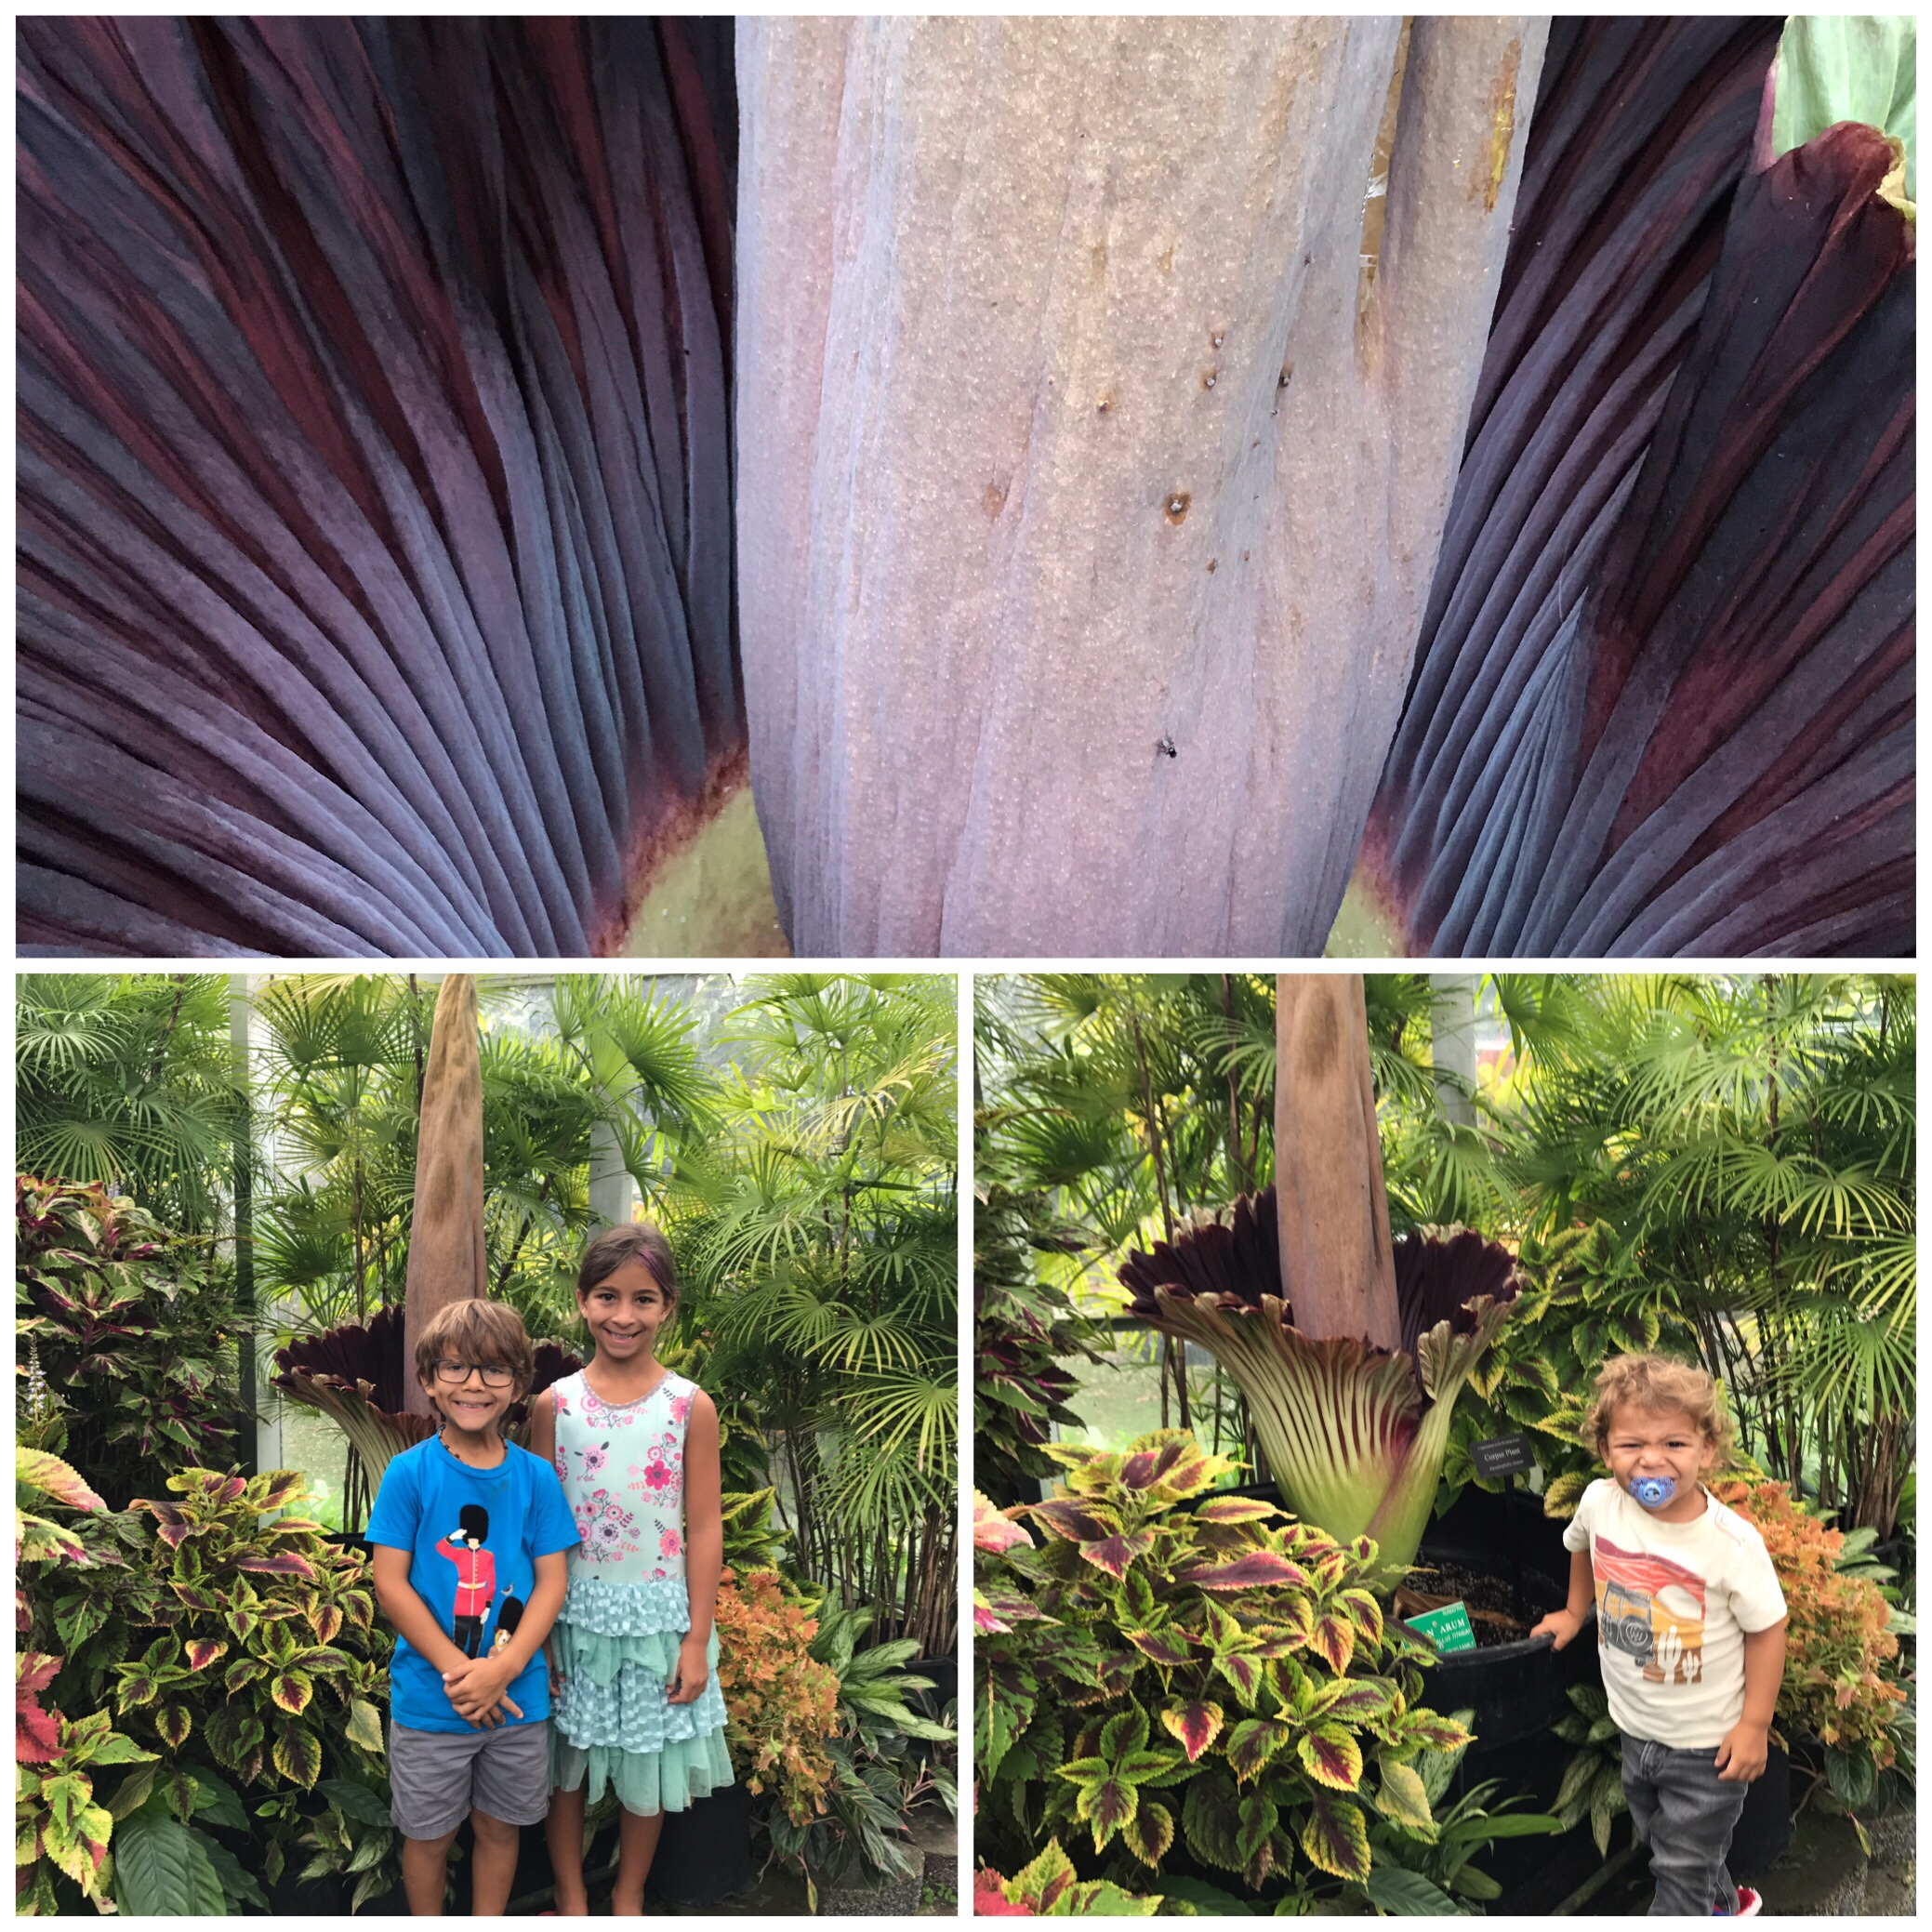 Corpse Flower, Missing Kid , and a Maimed Leg